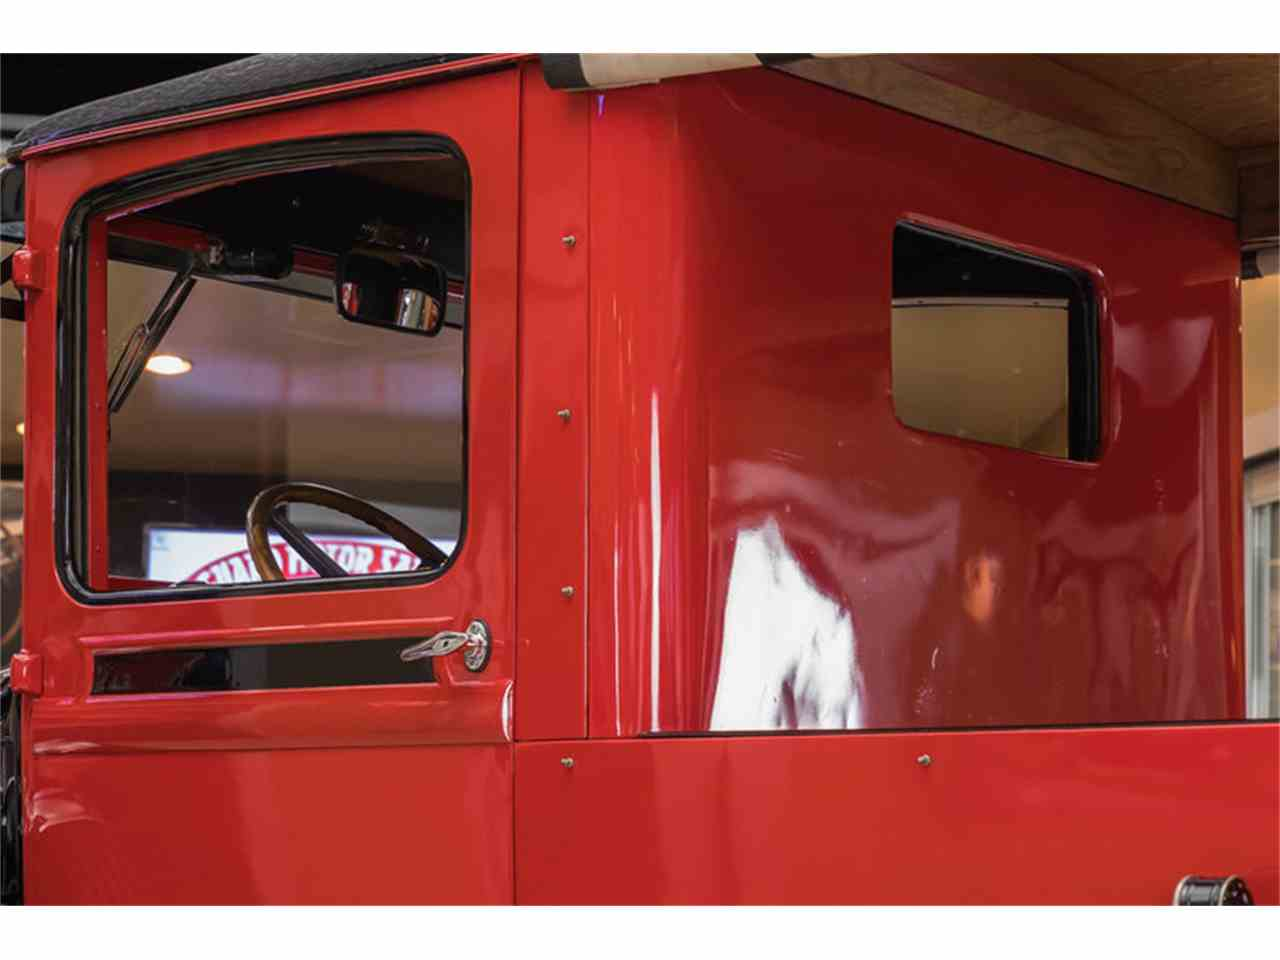 Large Picture of Classic '30 Chevrolet Huckster Truck - $49,900.00 - L5ME